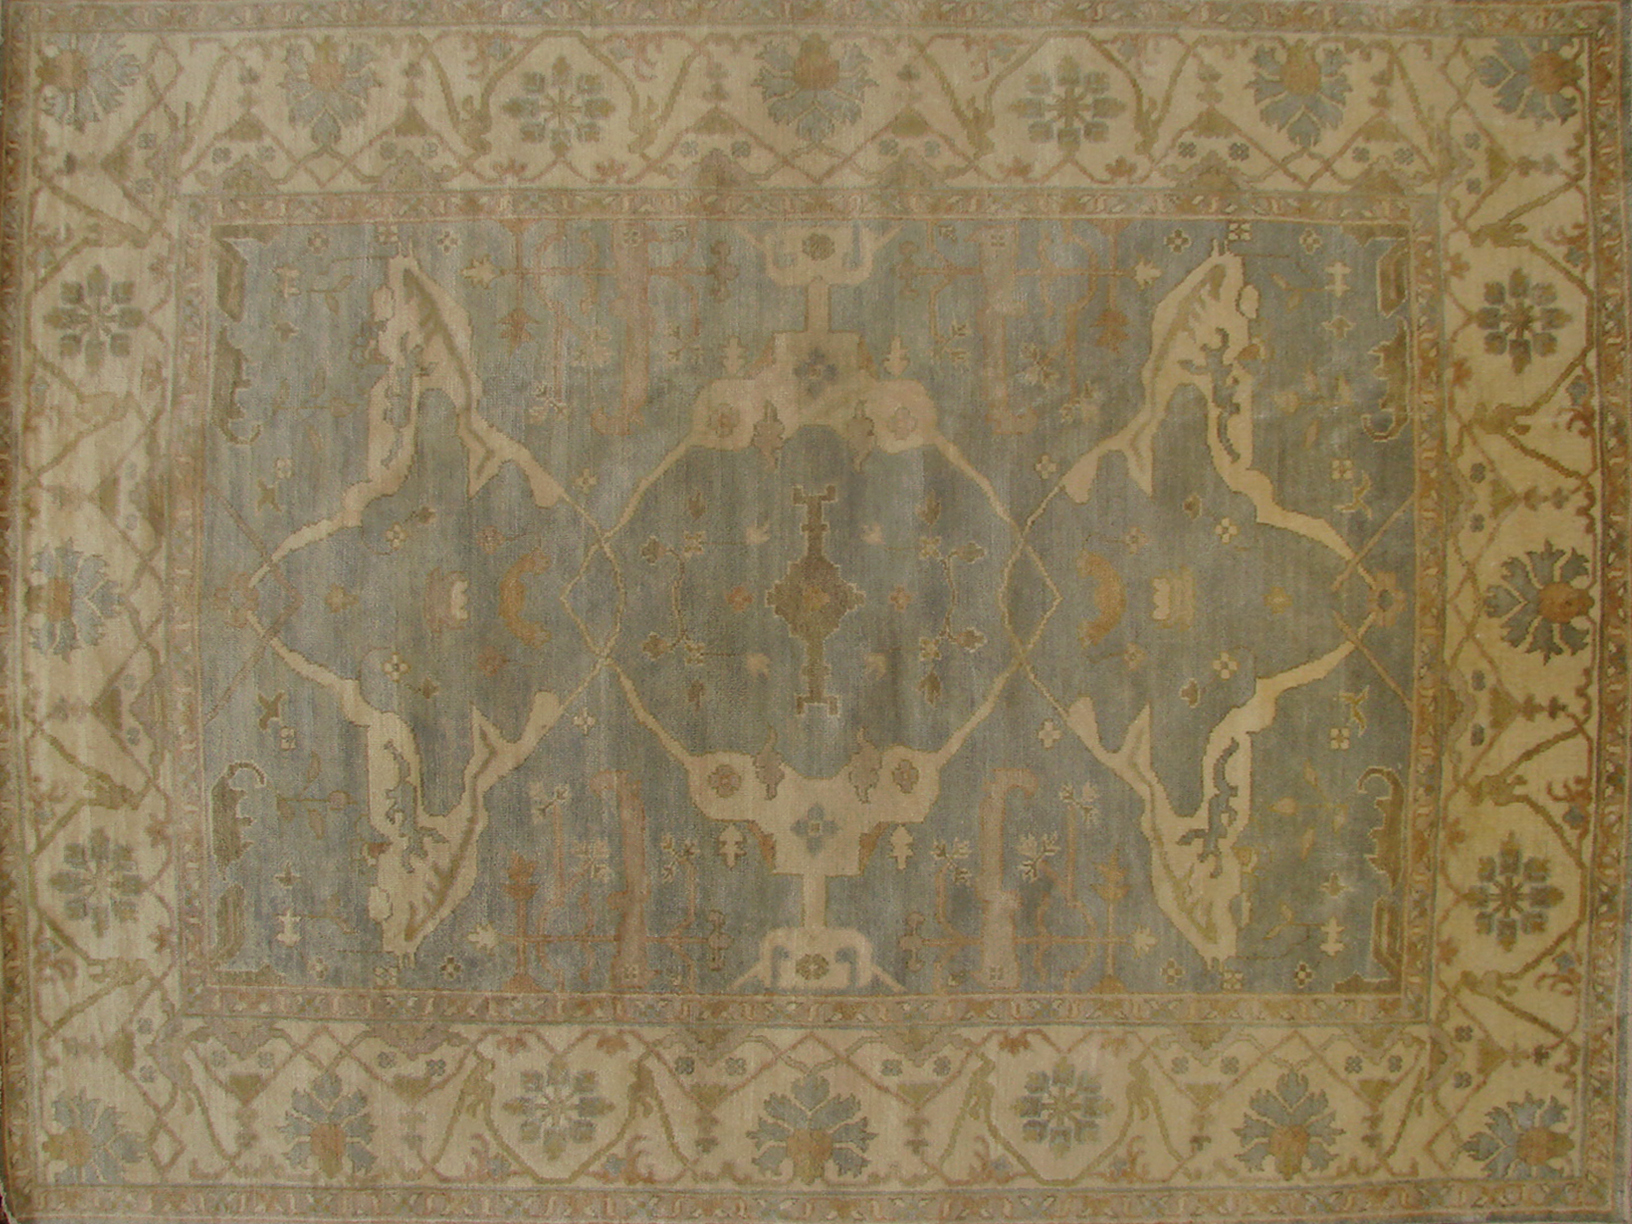 8x10 Oushak Hand Knotted Wool Area Rug - MR18769